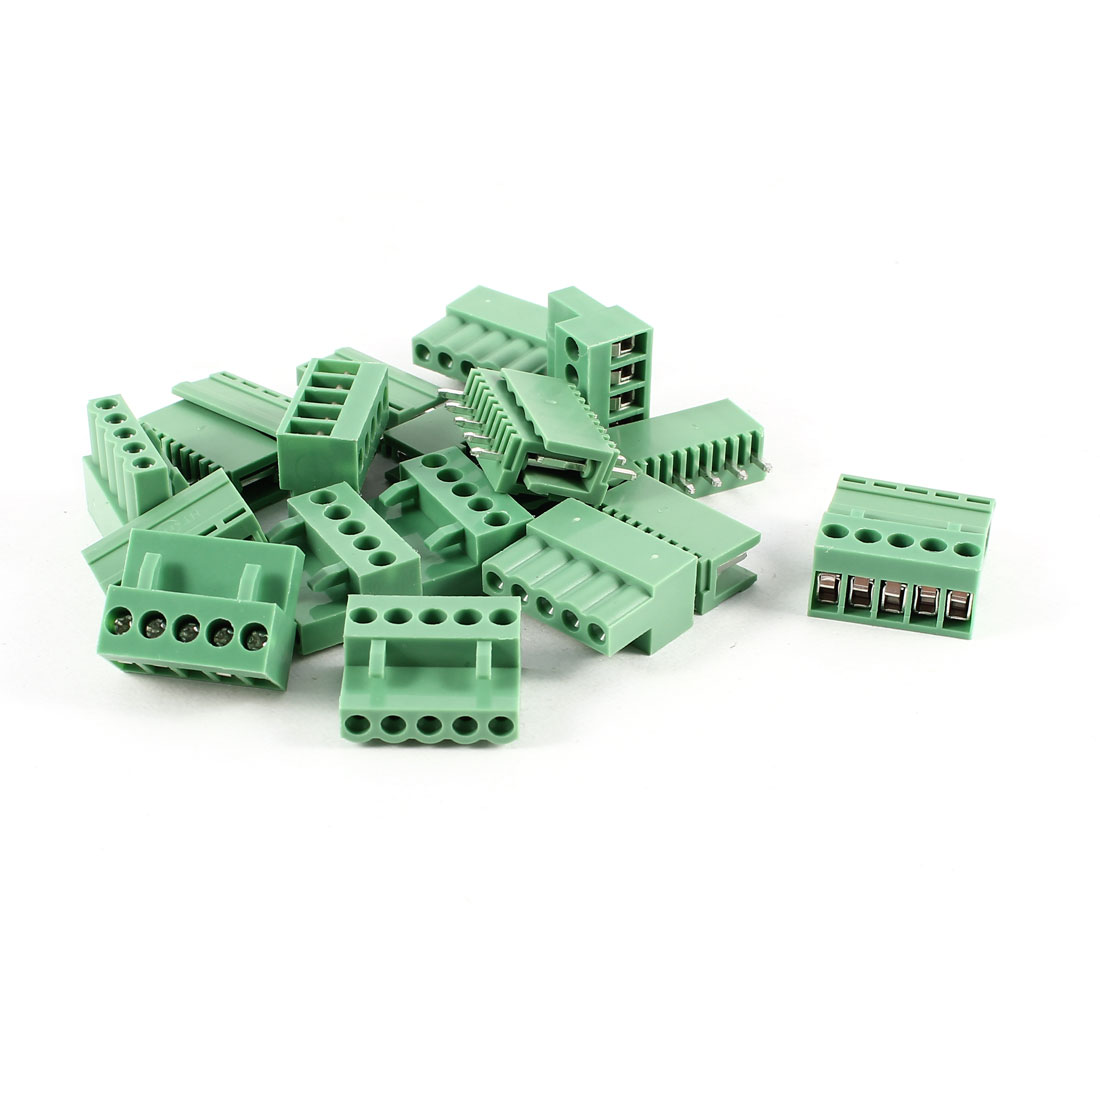 10 Pcs Green HT3.96 HT396K 5 Position 3.96mm Screw Pluggable Terminal Block Connector 300V 10A